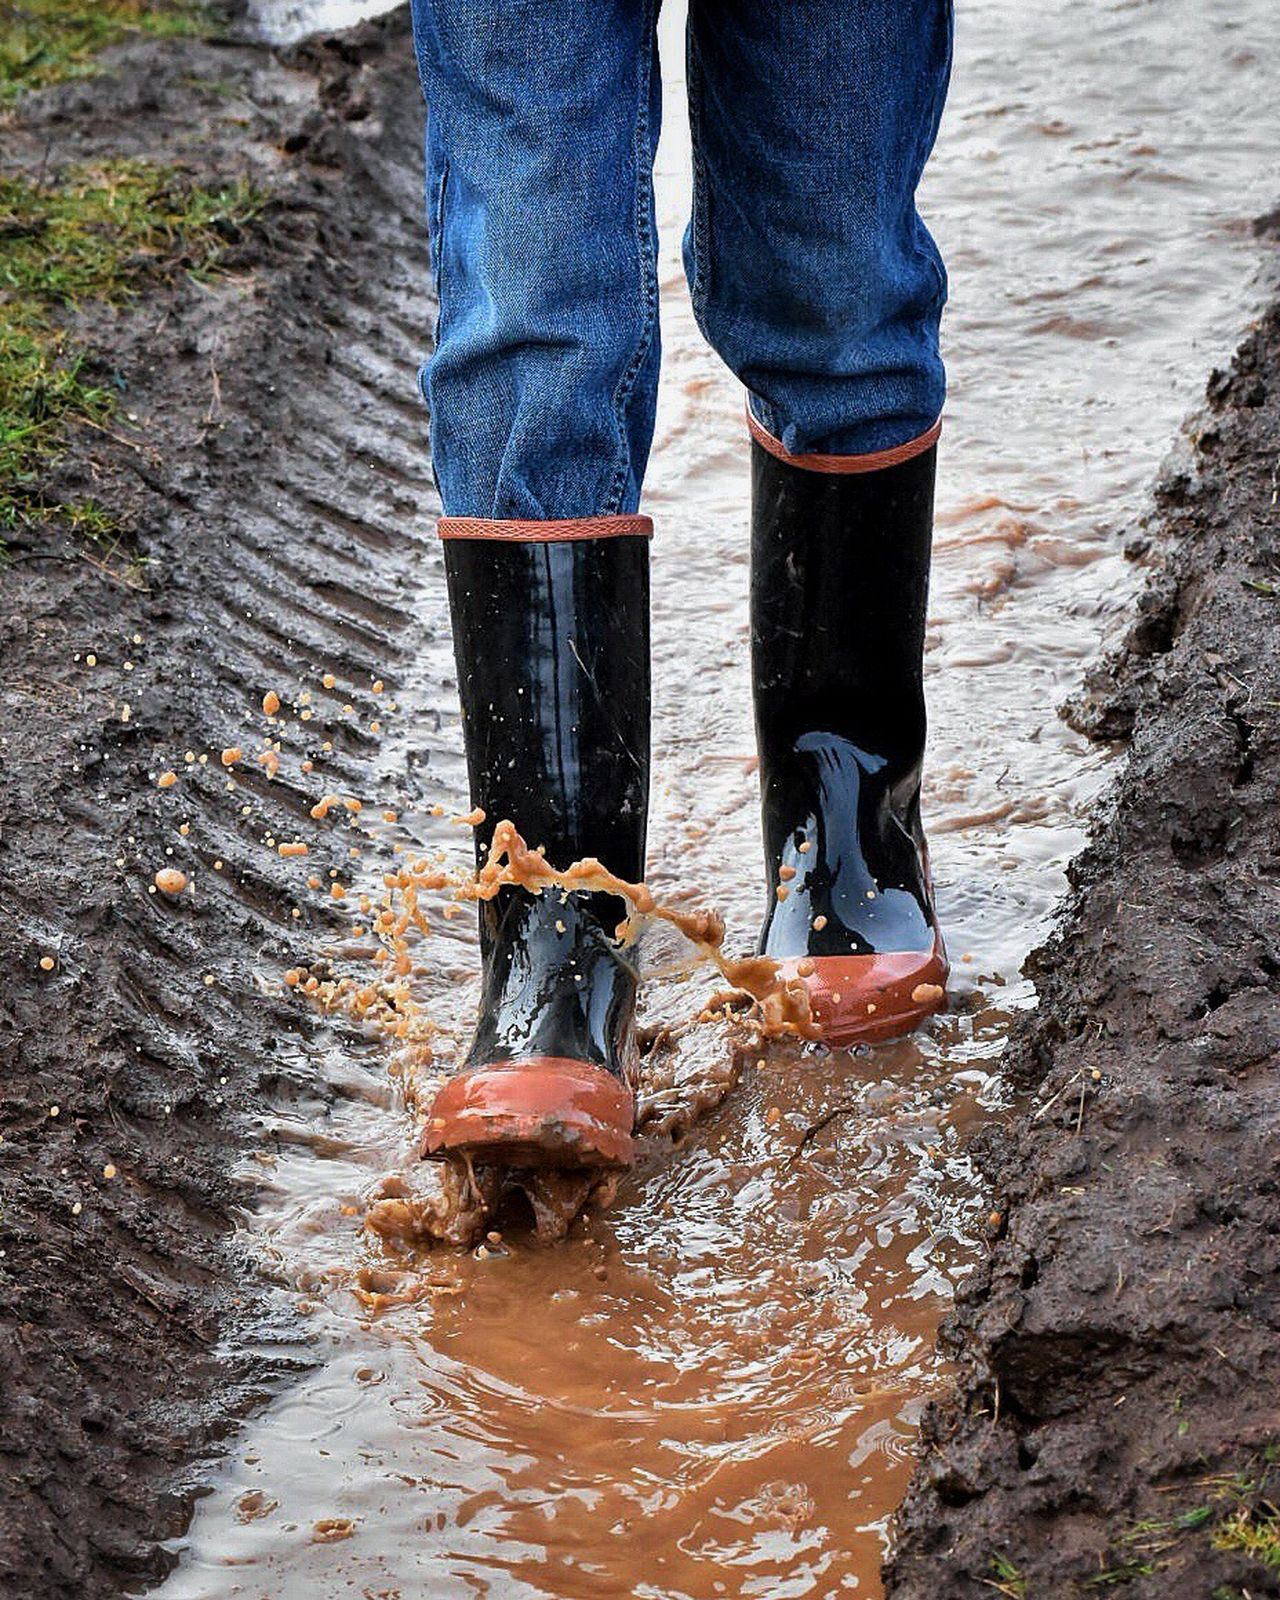 Low Section Human Foot Outdoors Water Human Body Part Human Leg Jeans Casual Clothing Standing Day Shoe Close-up One Person Leisure Activity People Having Fun Puddle Outdoor Photography Adventure Rubber Boots Childhood Puddles Jeans Walking In A Puddle Nature